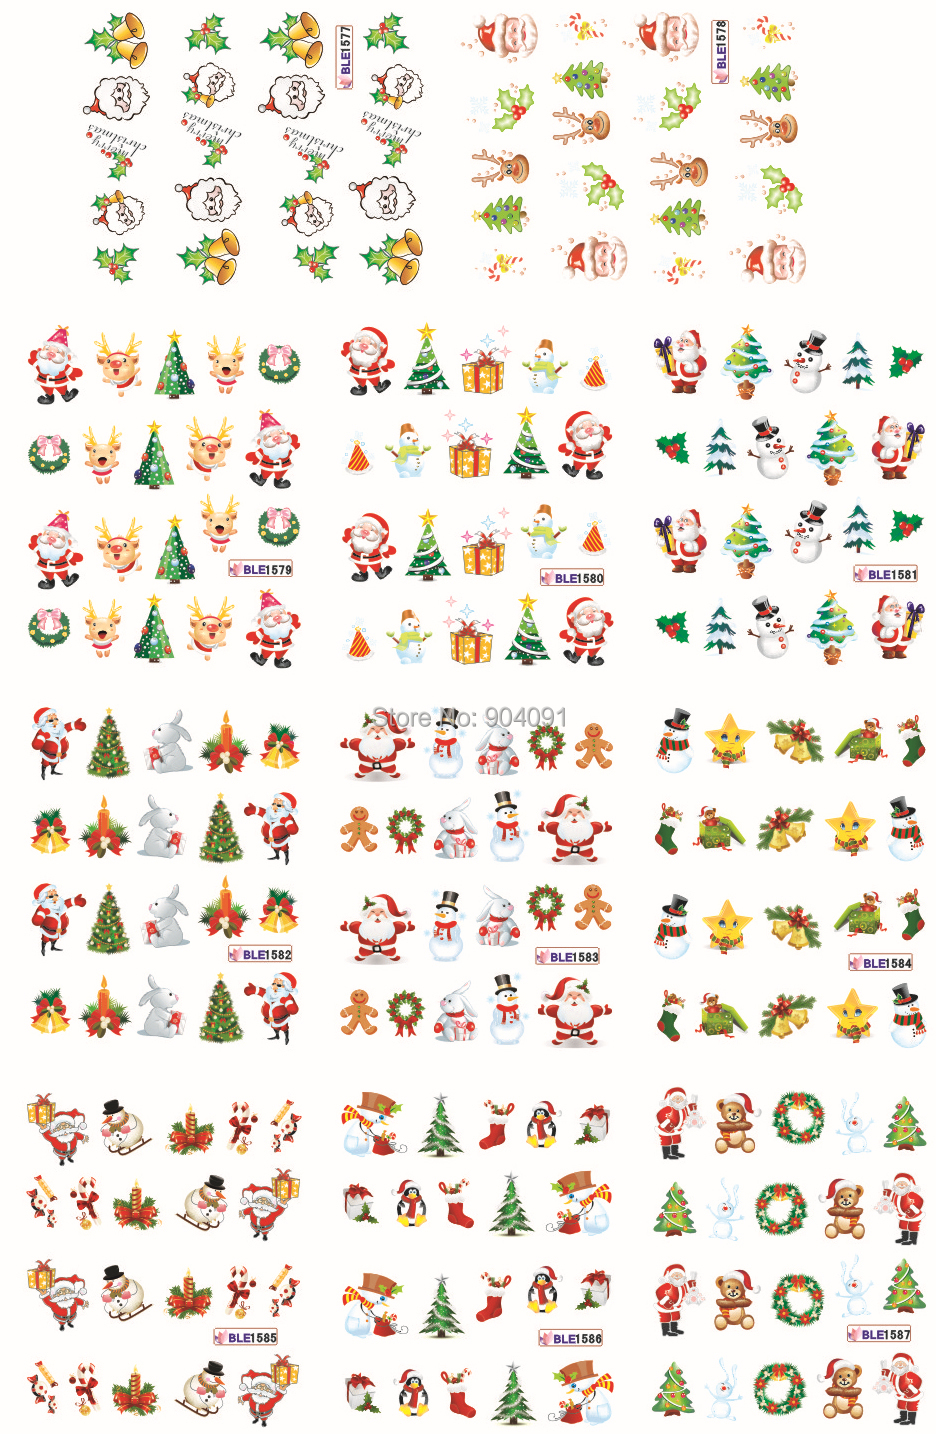 HOTSALE LARGE 1 SET(11 DESIGNS IN 1 set) Christmas nail sticker DECAL BLE1577-1587 Serie nail art tool for water sticker(China (Mainland))